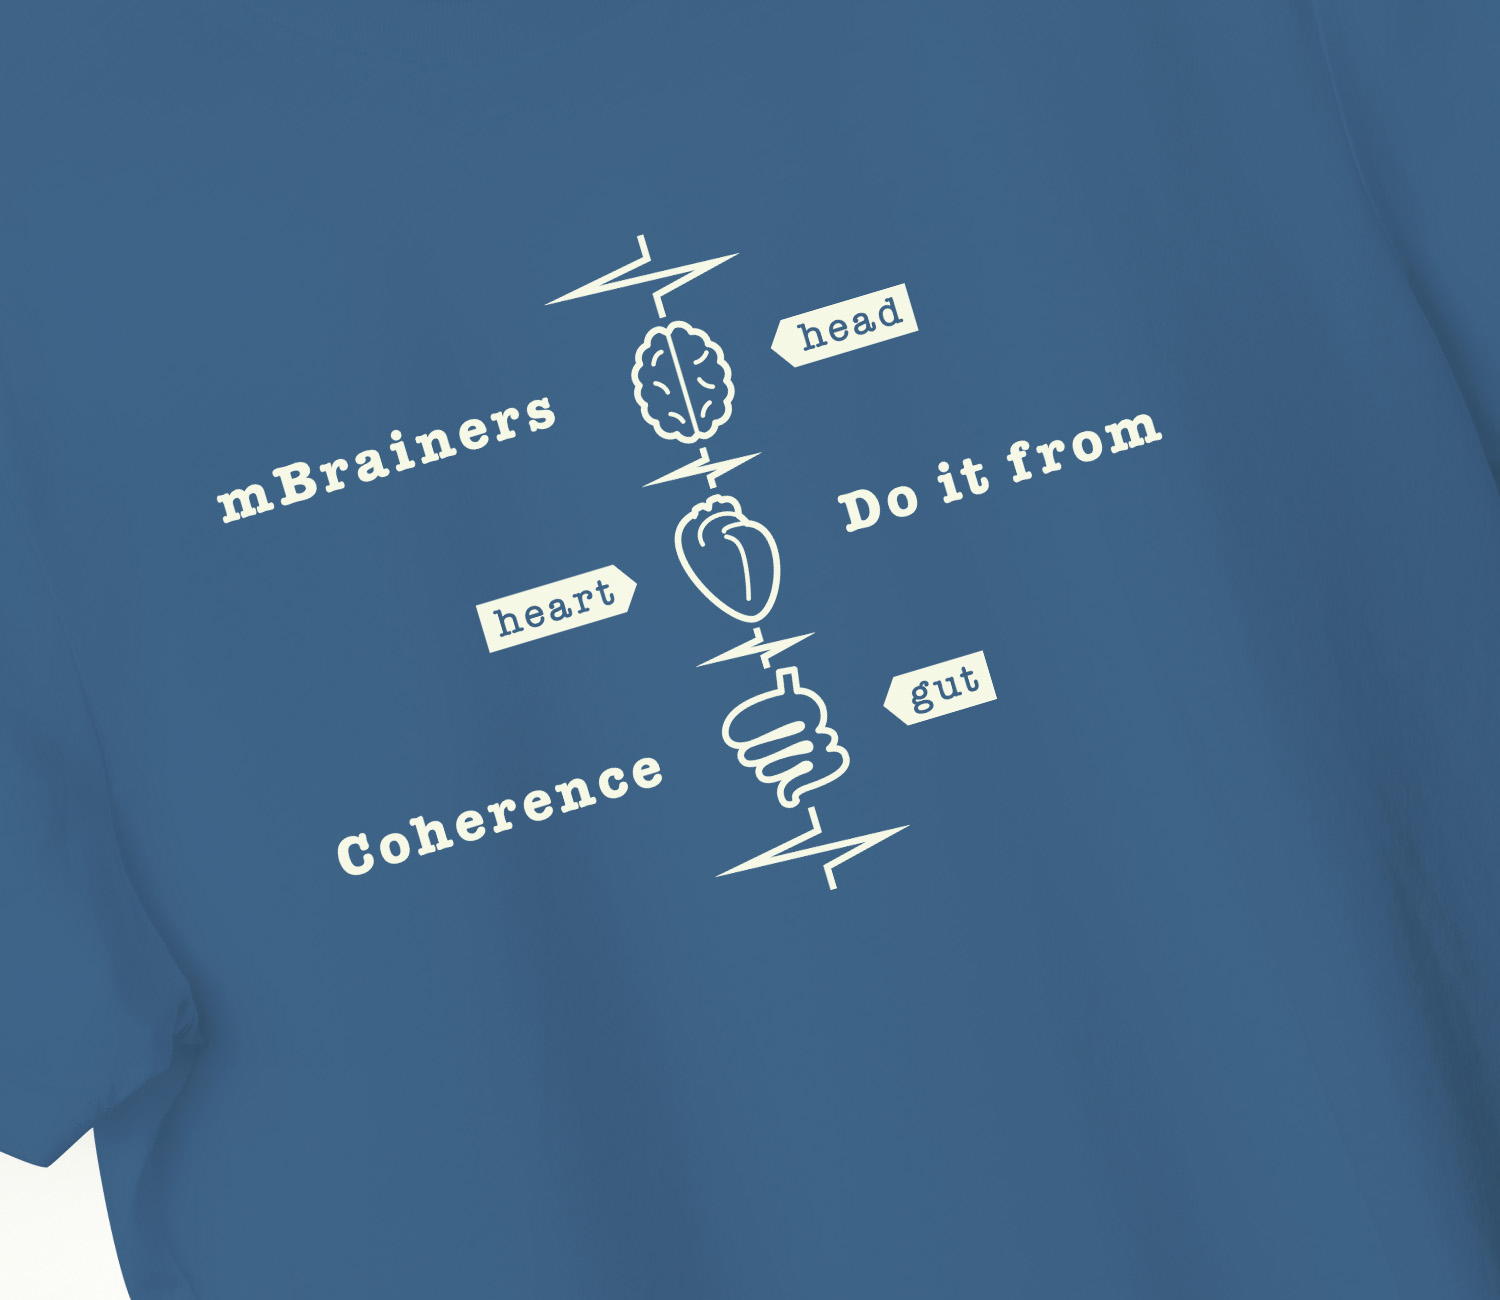 mBrainers do it from coherence T-shirt. Detail